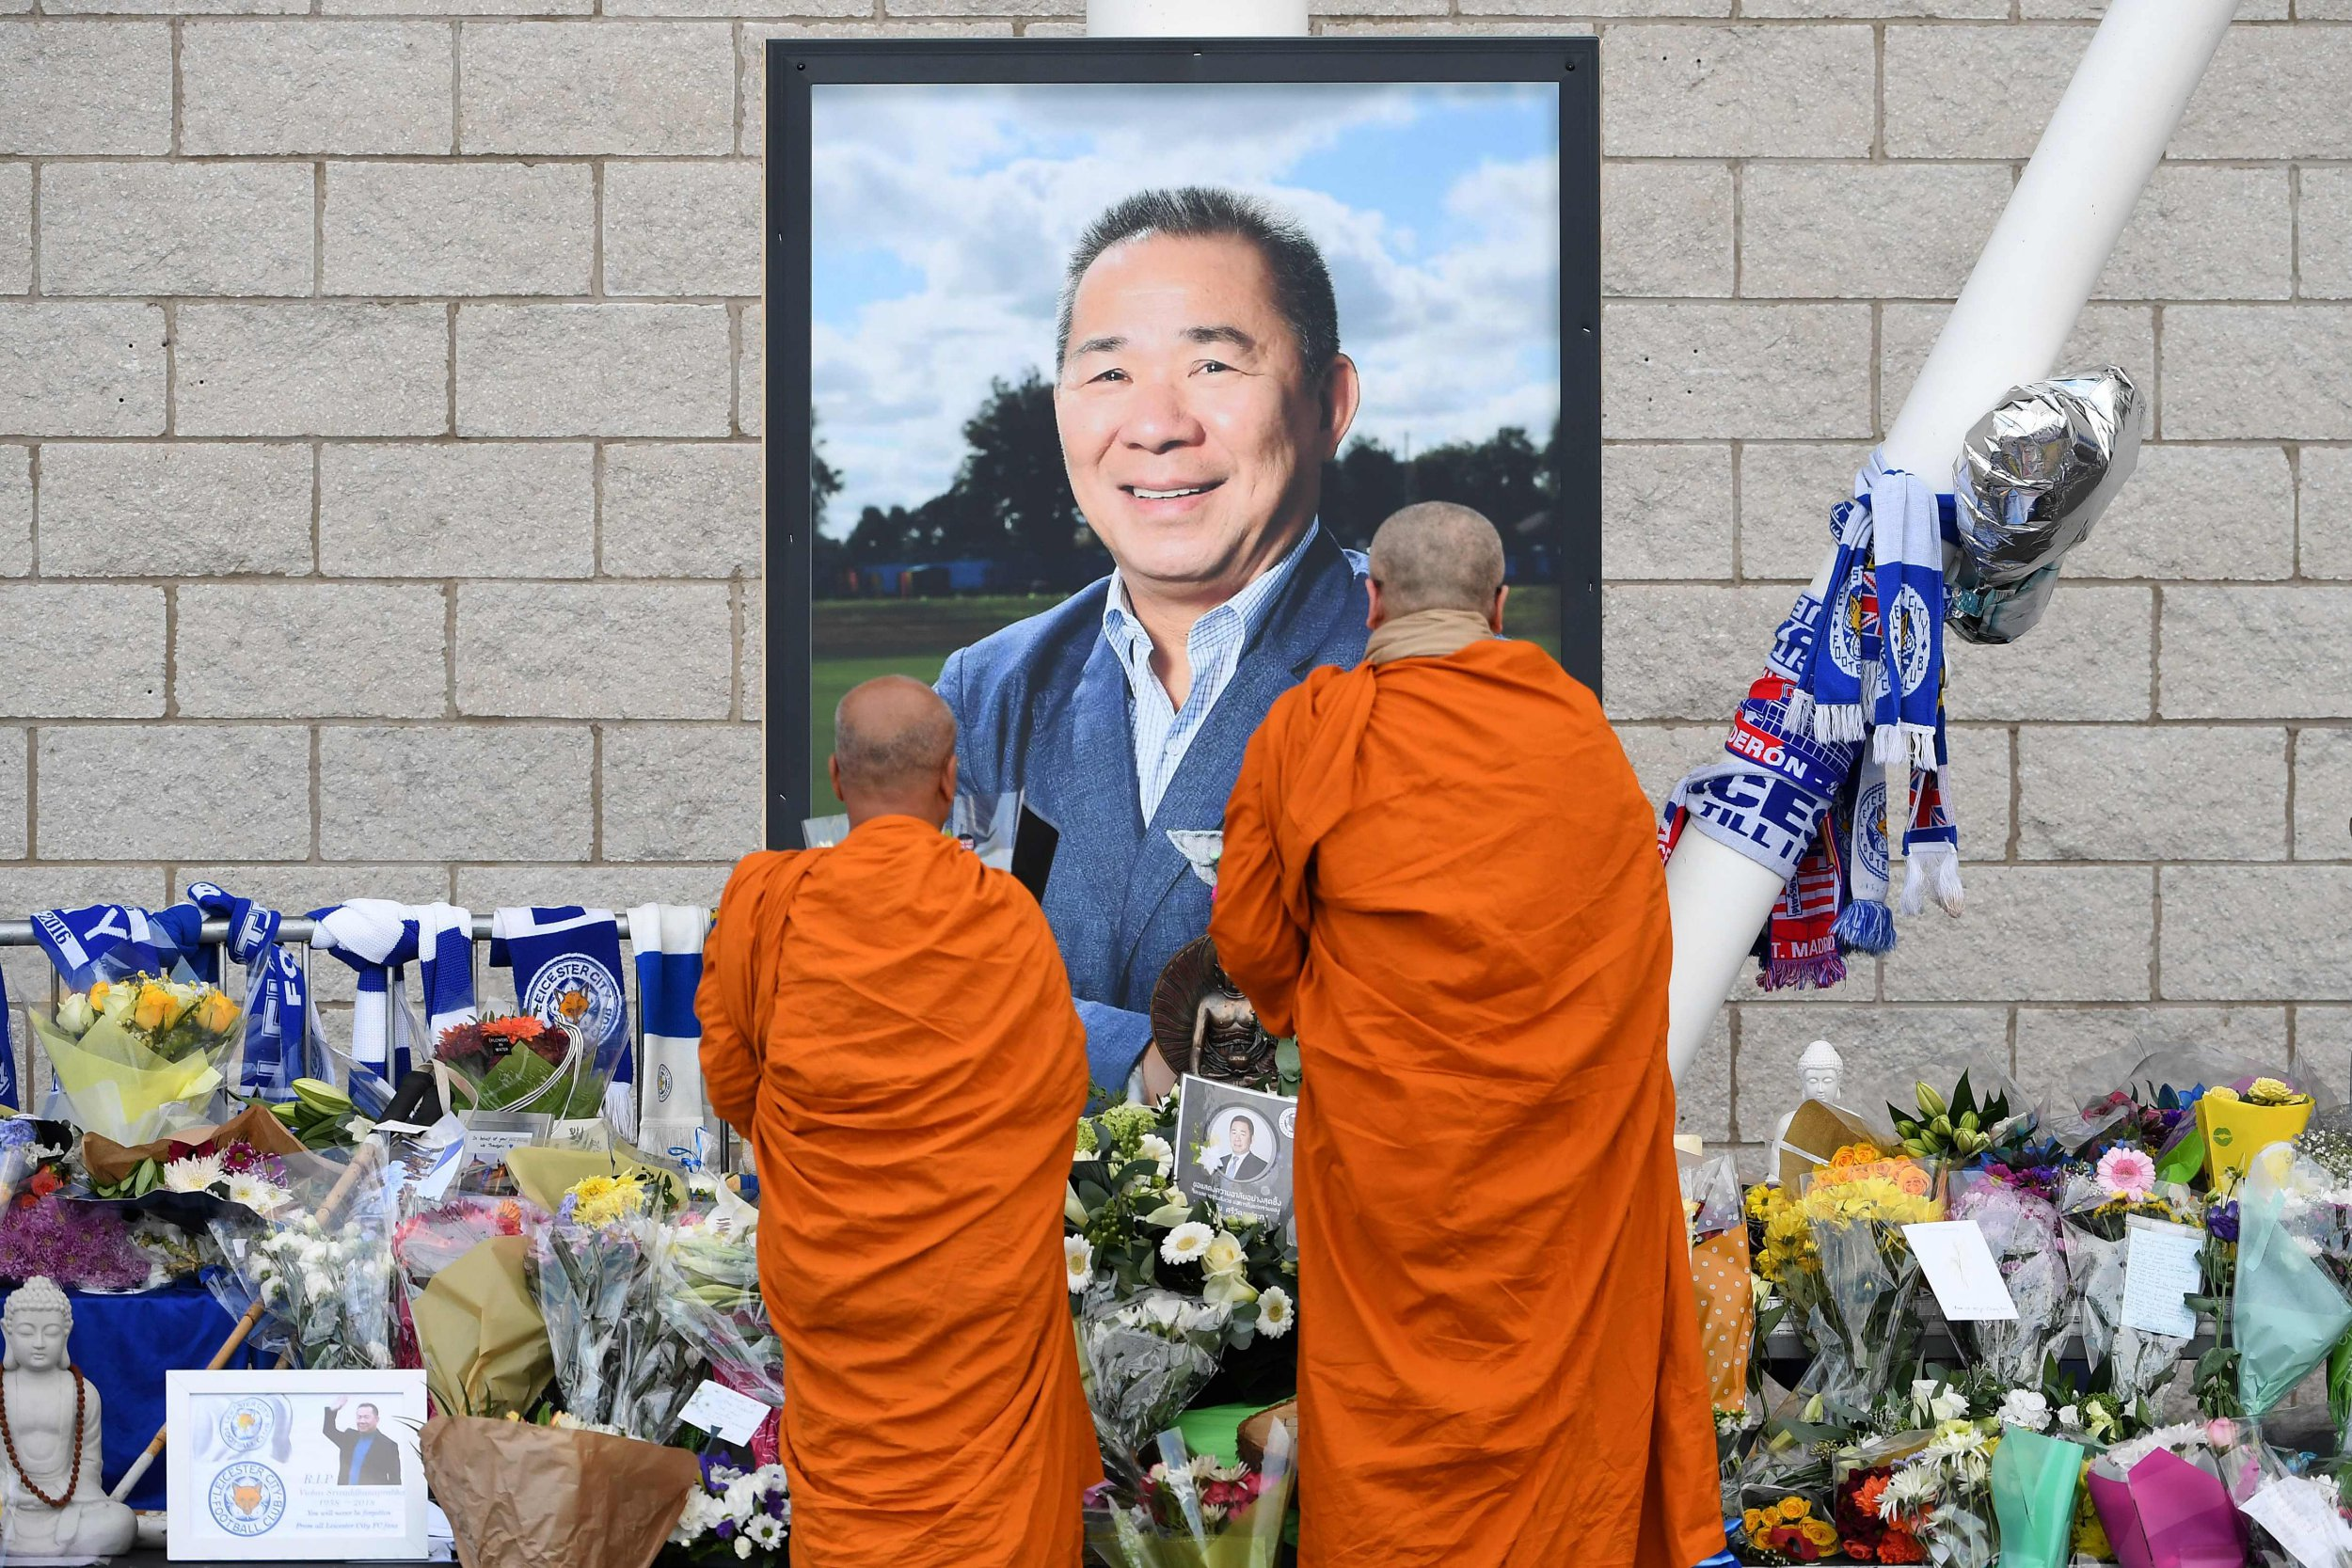 Buddhist monks lay tributes by a photograph of Leicester City Football Club's Thai chairman Vichai Srivaddhanaprabha, outside Leicester City Football Club's King Power Stadium in Leicester, eastern England, on October 31, 2018 in honour and remembrance of those who died in a helicopter crash at the club's stadium on October 27 including the club's Thai chairman Vichai Srivaddhanaprabha. - Leicester City's chairman Vichai Srivaddhanaprabha was among five people killed when his helicopter crashed and burst into flames in the Premier League side's stadium car park moments after taking off from the pitch, the club said on October 28. A stream of fans already fearing the worst had laid out flowers, football scarves and Buddhist prayers outside the club's King Power stadium after Saturday's accident in tribute to the Thai billionaire boss -- the man they credit for an against-all-odds Premier League victory in 2016 (Photo by Paul ELLIS / AFP)PAUL ELLIS/AFP/Getty Images